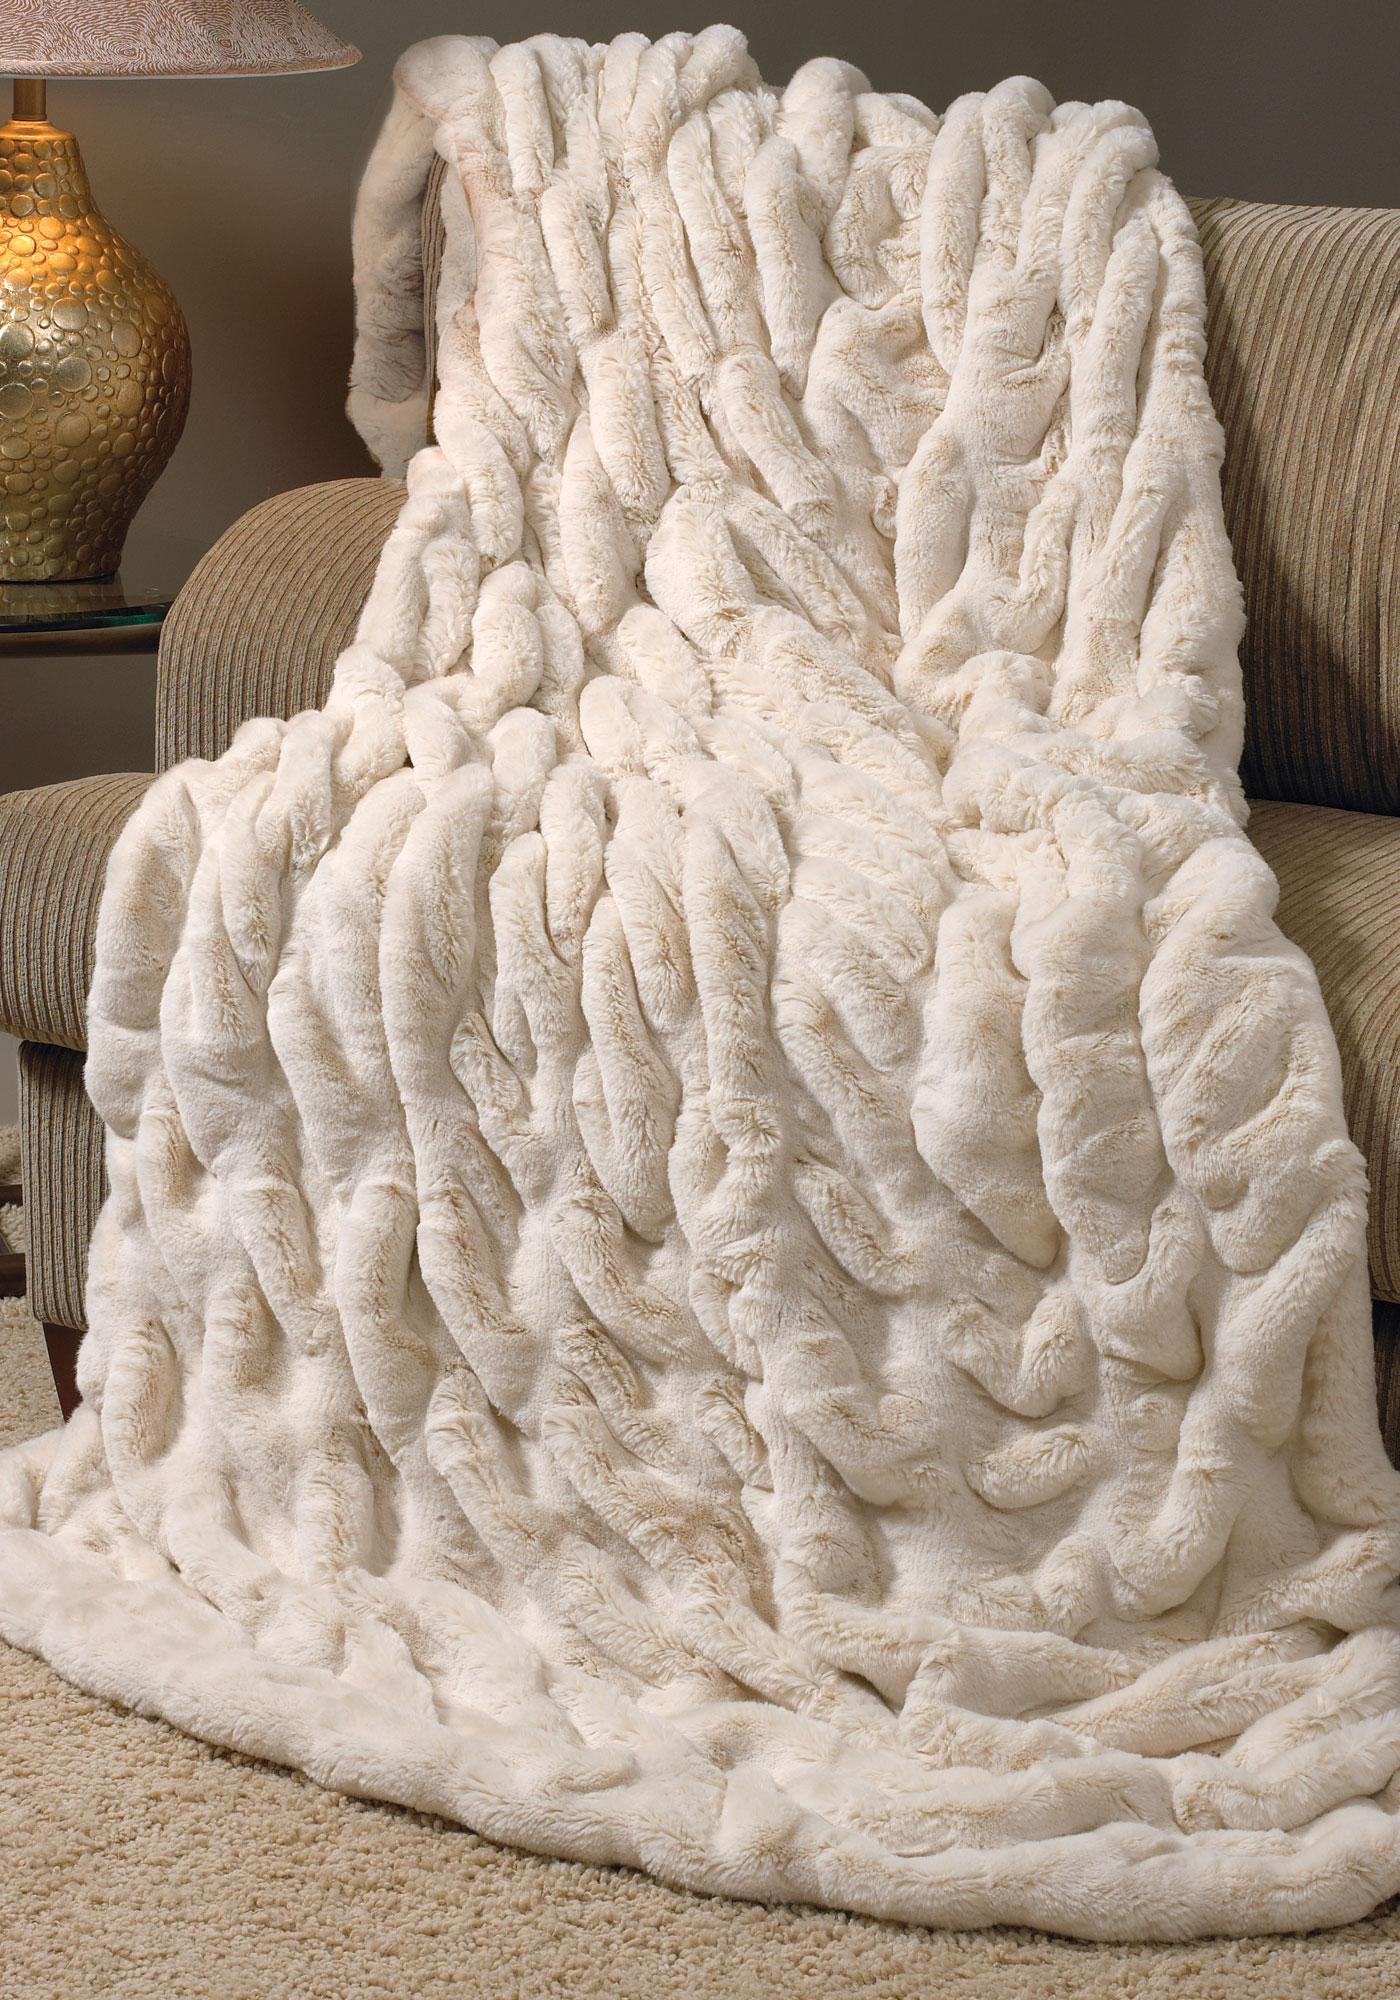 Ivory Mink Couturefaux Fur Blanket Queen Decorated On Comfy Chair Together  With Beige Furry Rug For